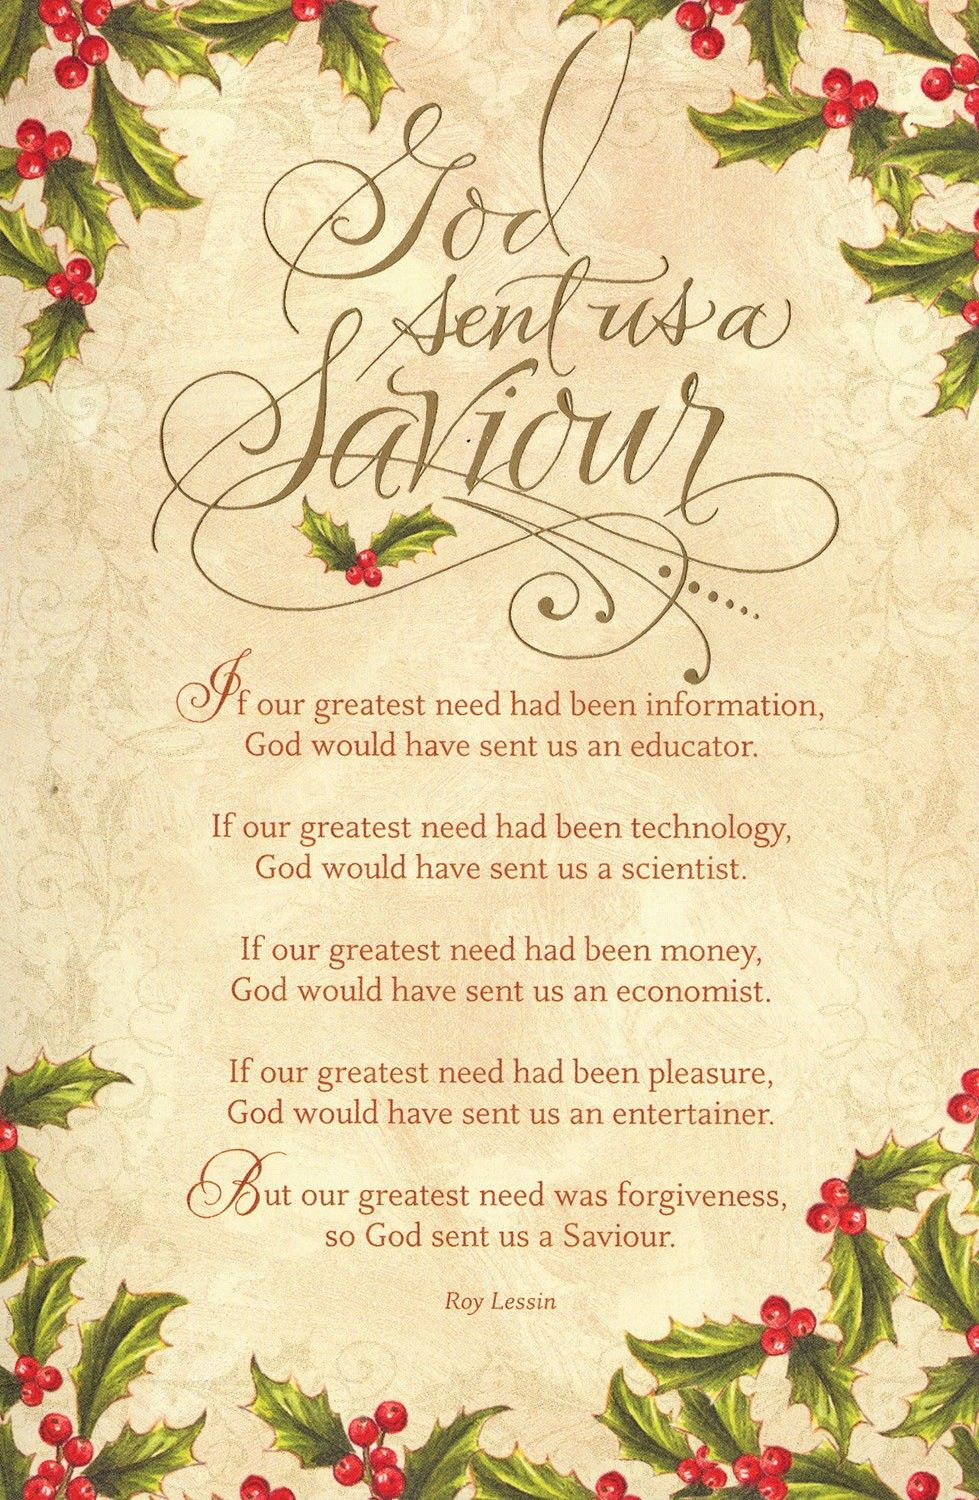 God Sent Us a Saviour Christmas Boxed Cards: FamilyChristian.com